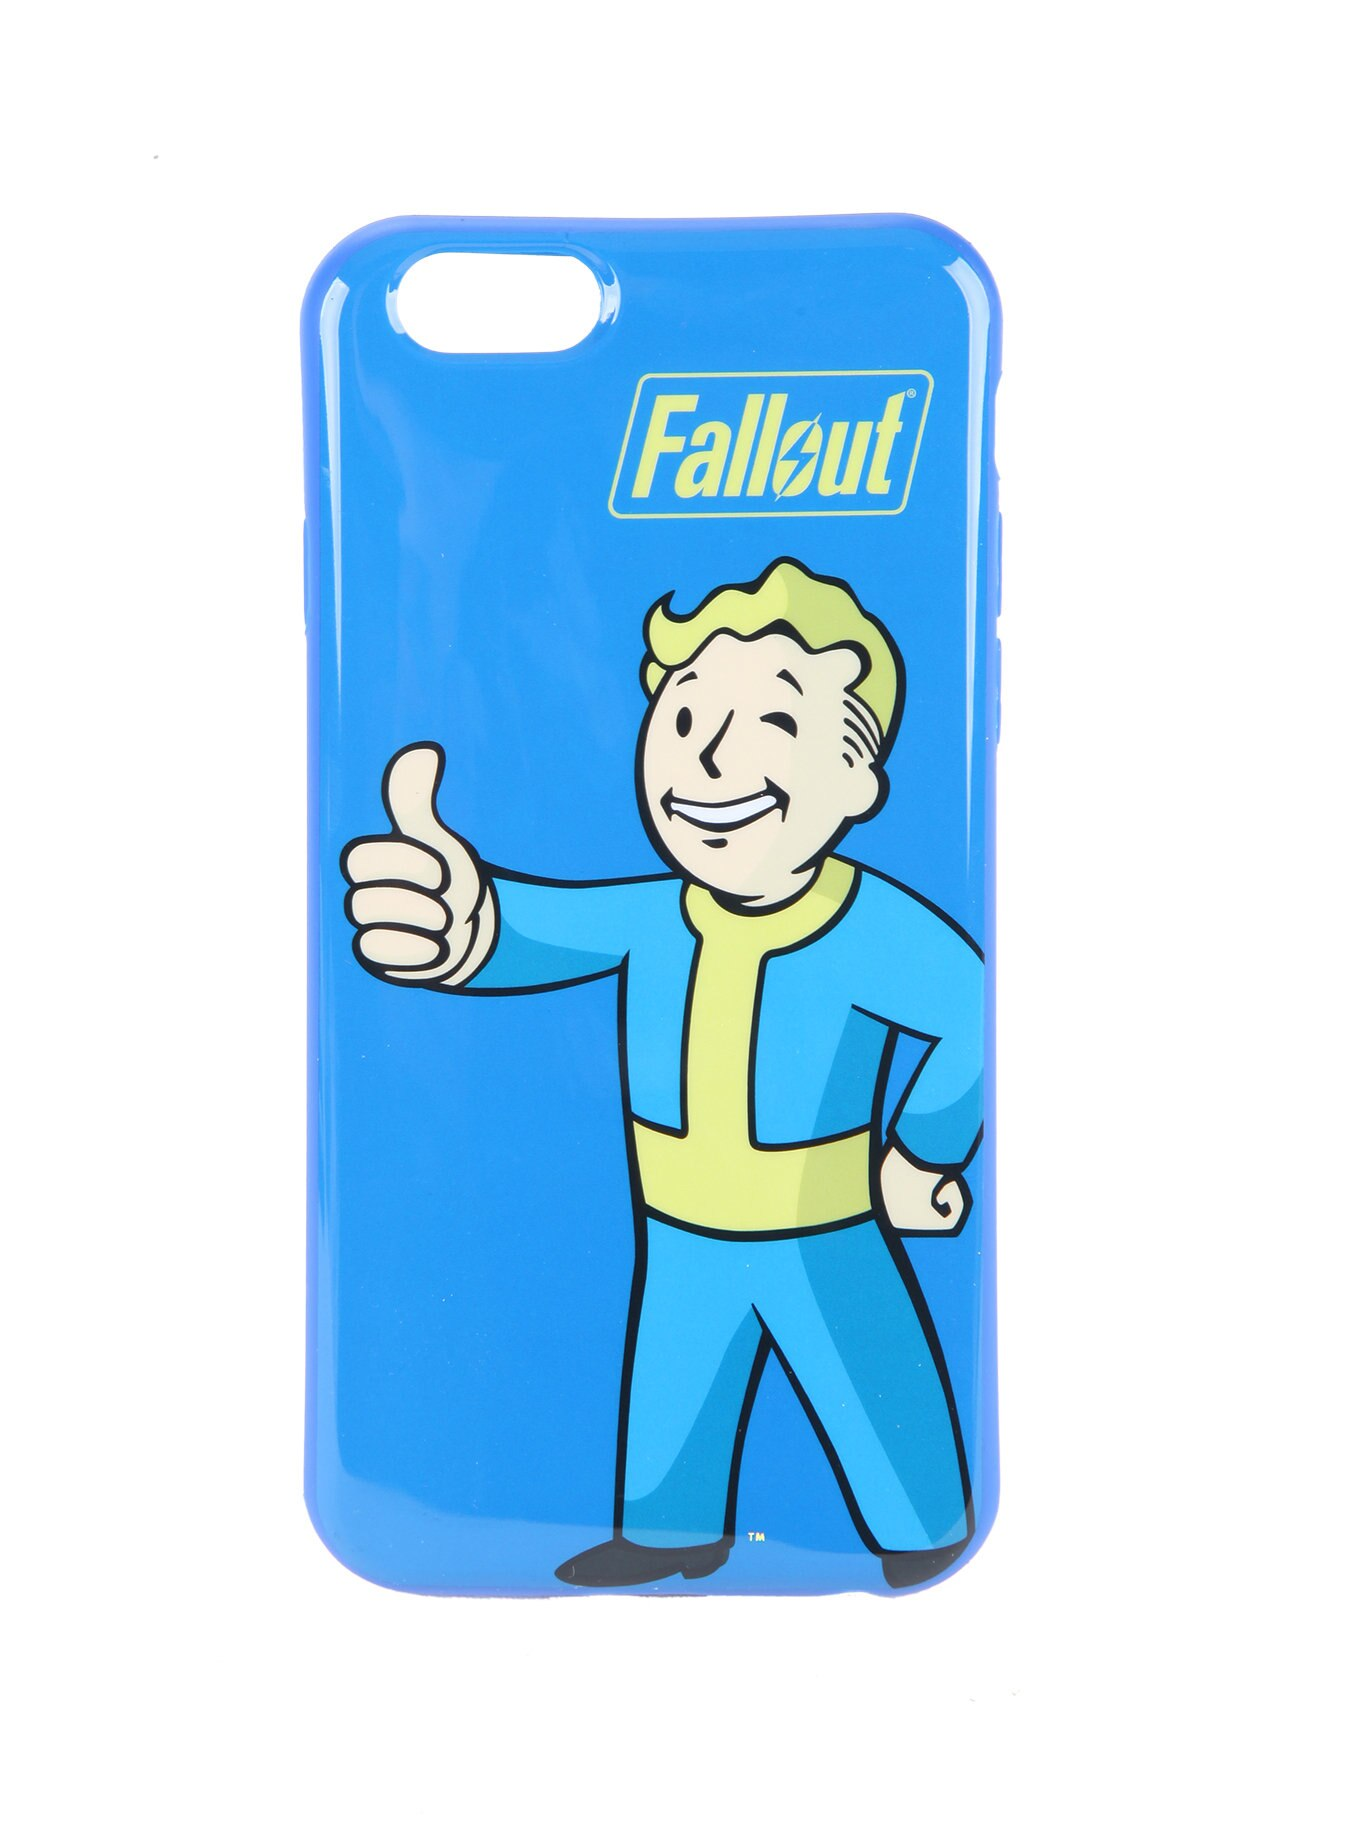 1360x1836 - Fallout iPhone 6 36